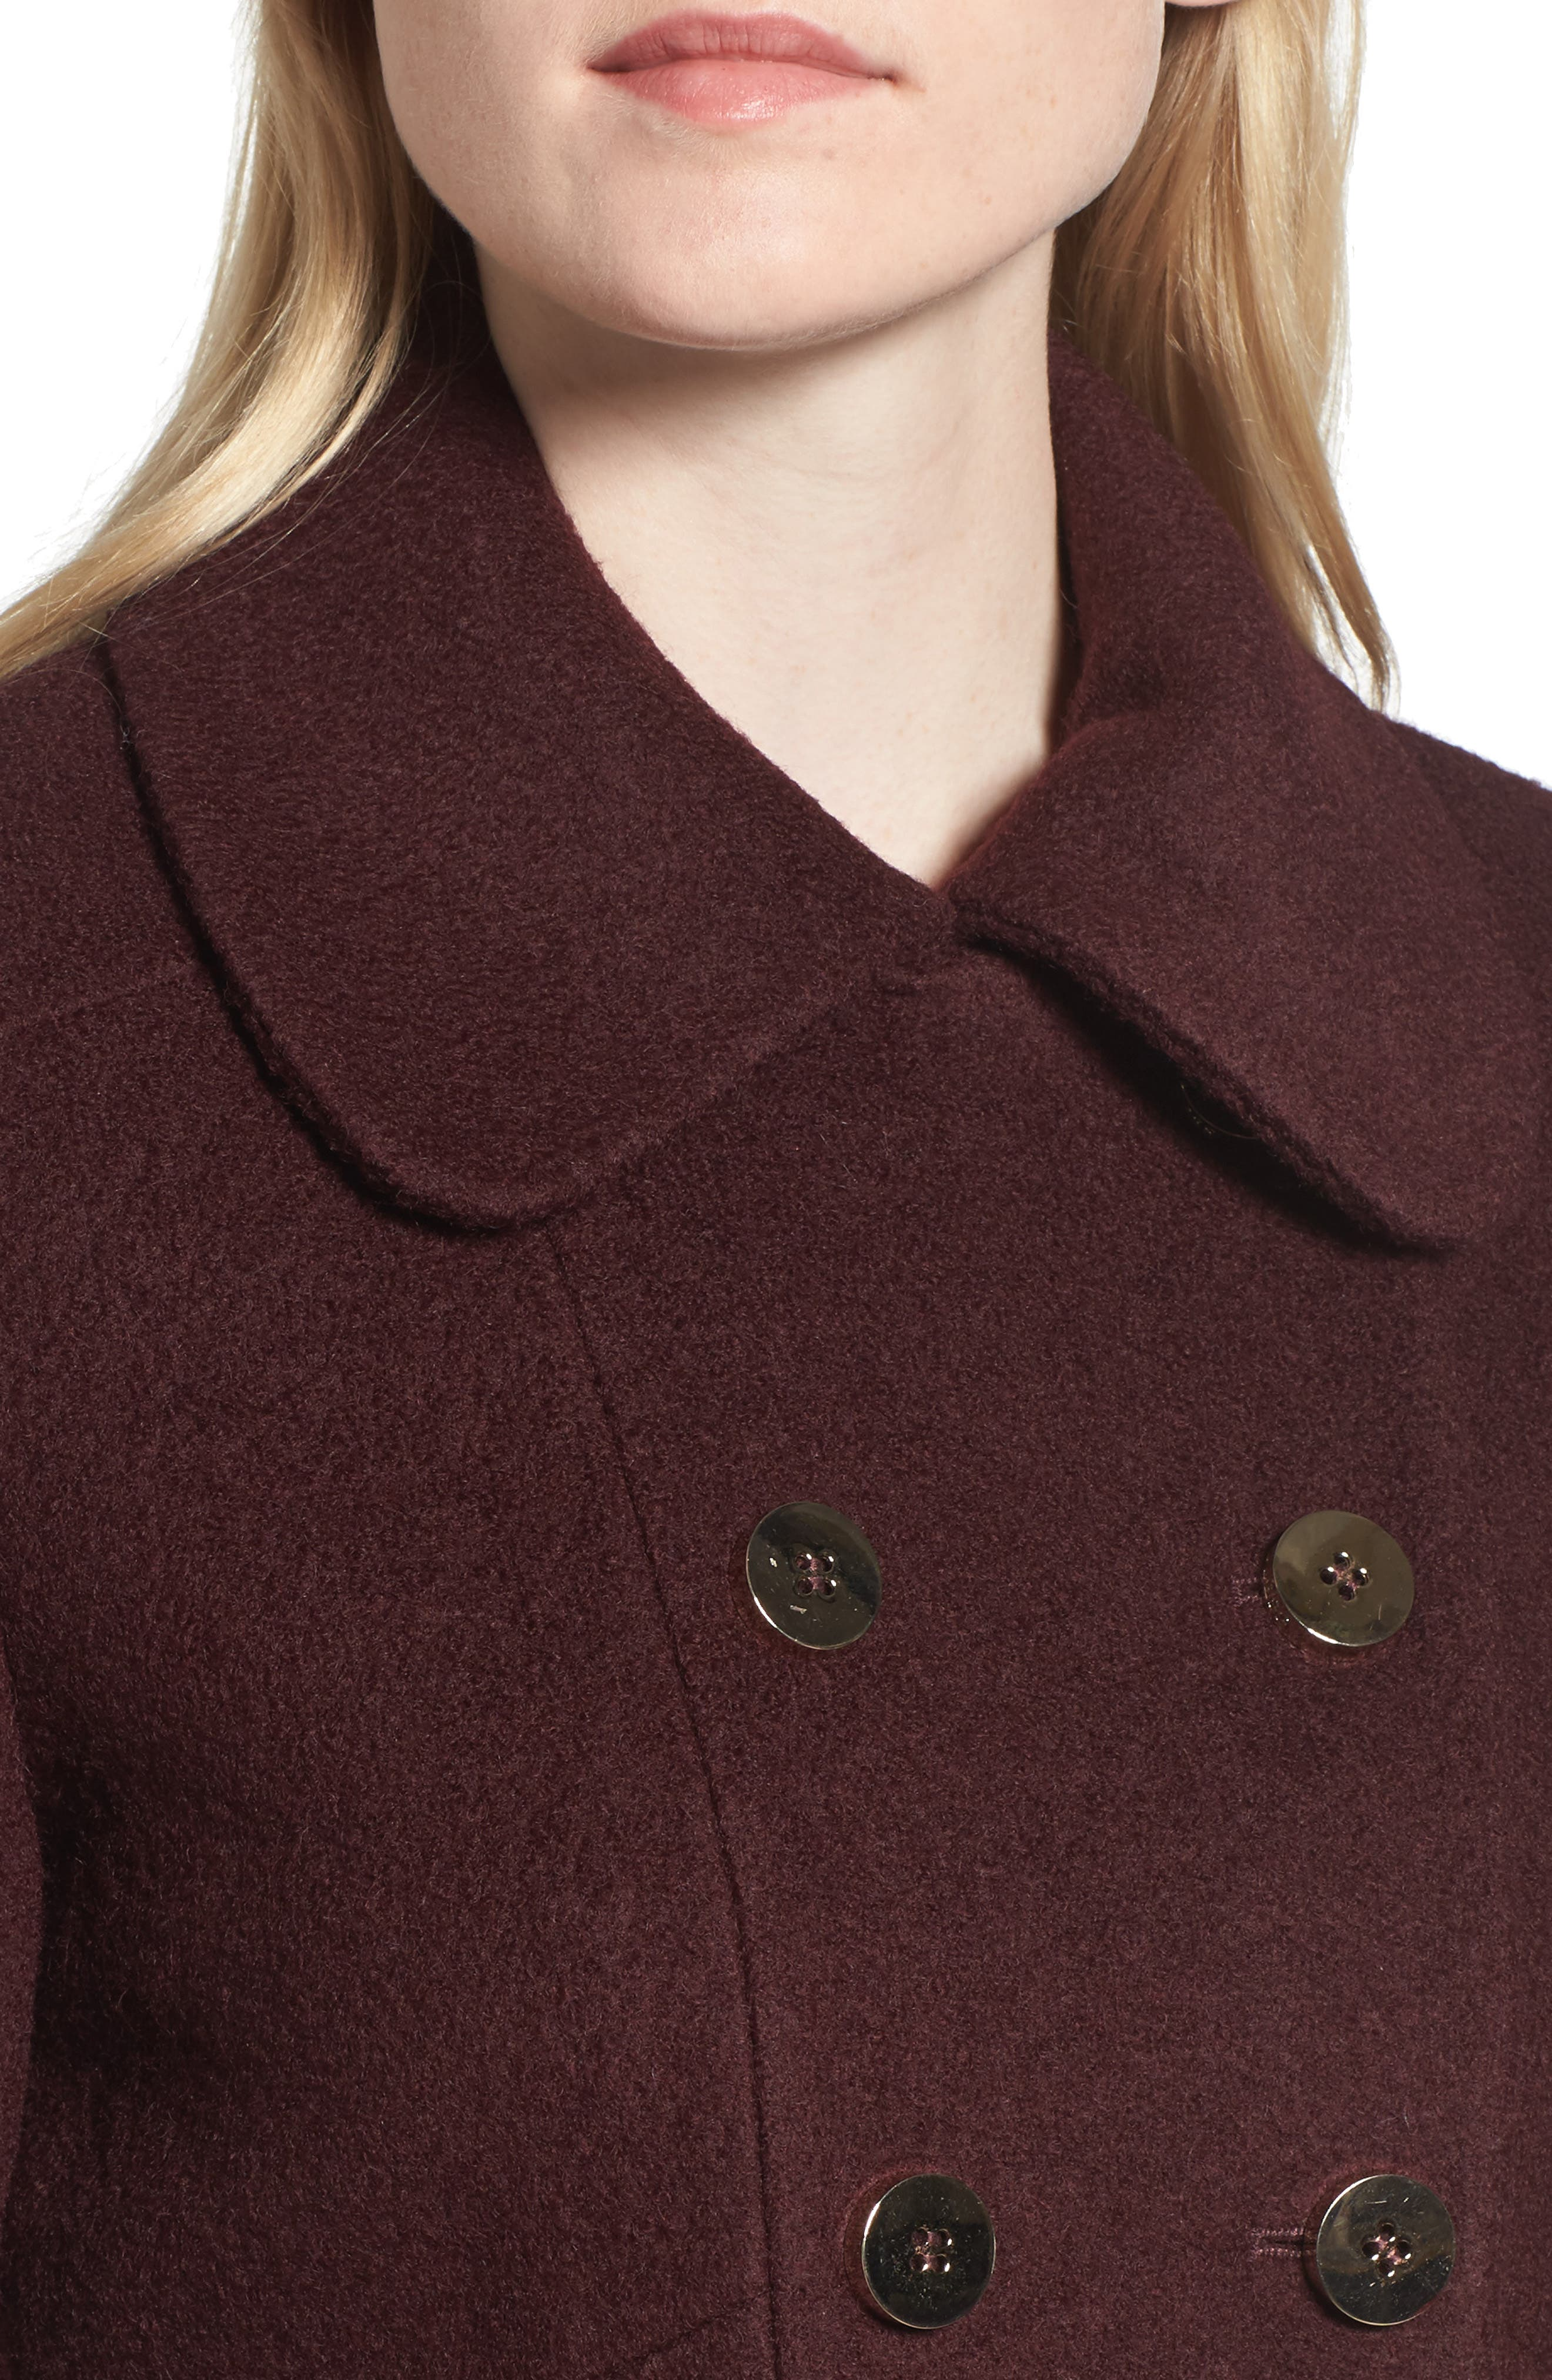 Alternate Image 3  - GUESS Double Breasted Boiled Wool Peacoat (Regular & Petite)